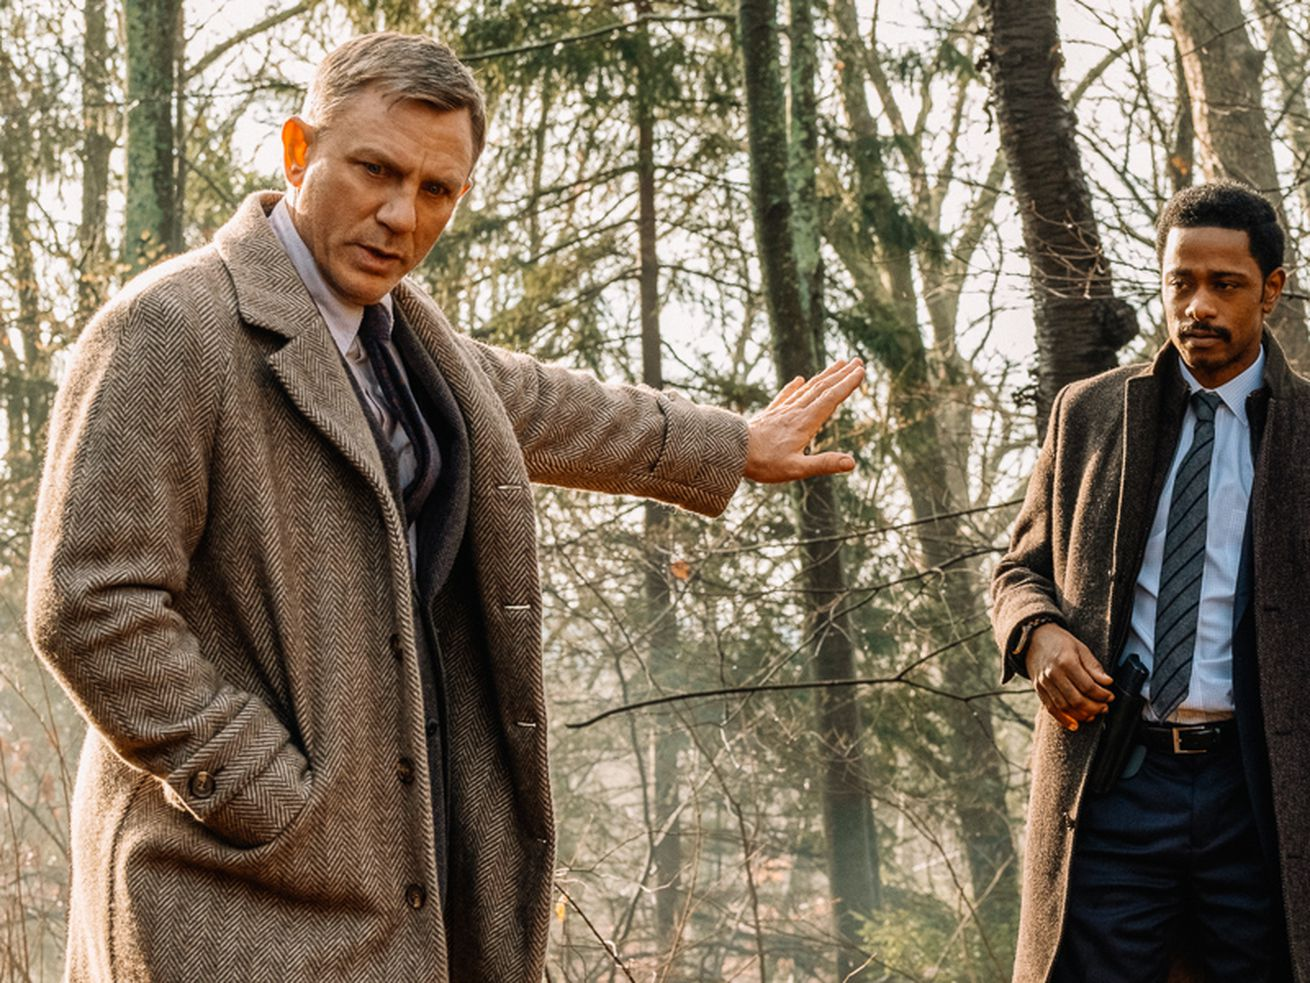 """Daniel Craig, Lakeith Stanfield, and Noah Segan stand in the woods in the movie """"Knives Out."""""""